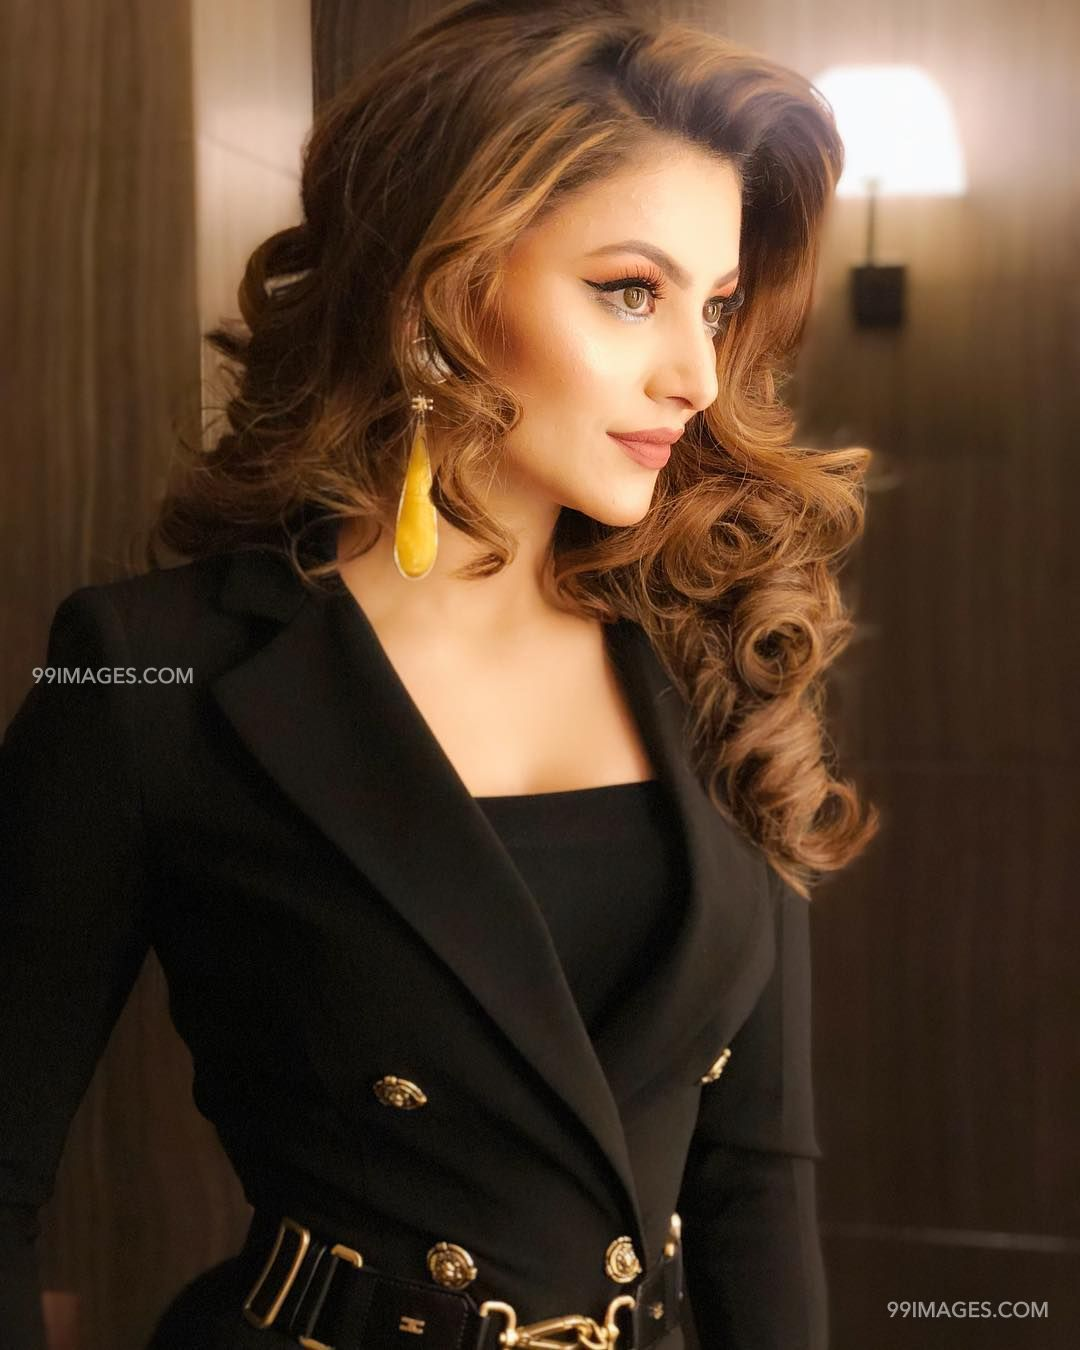 Urvashi Rautela Beautiful Photos & Mobile Wallpapers HD (Android/iPhone) (1080p) (36322) - Urvashi Rautela